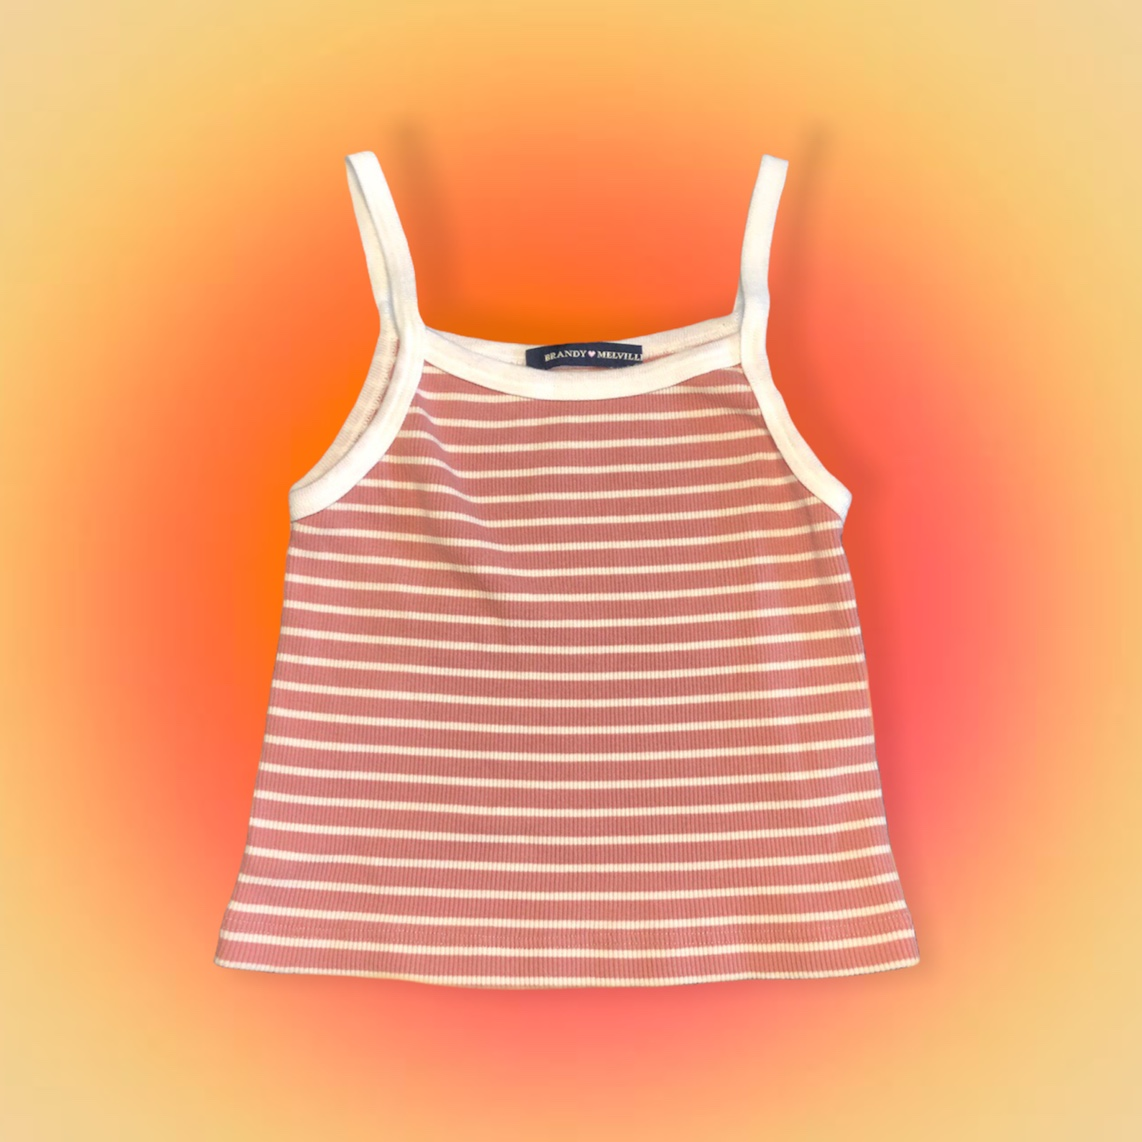 Product Image 1 - striped brandy melville belle tank